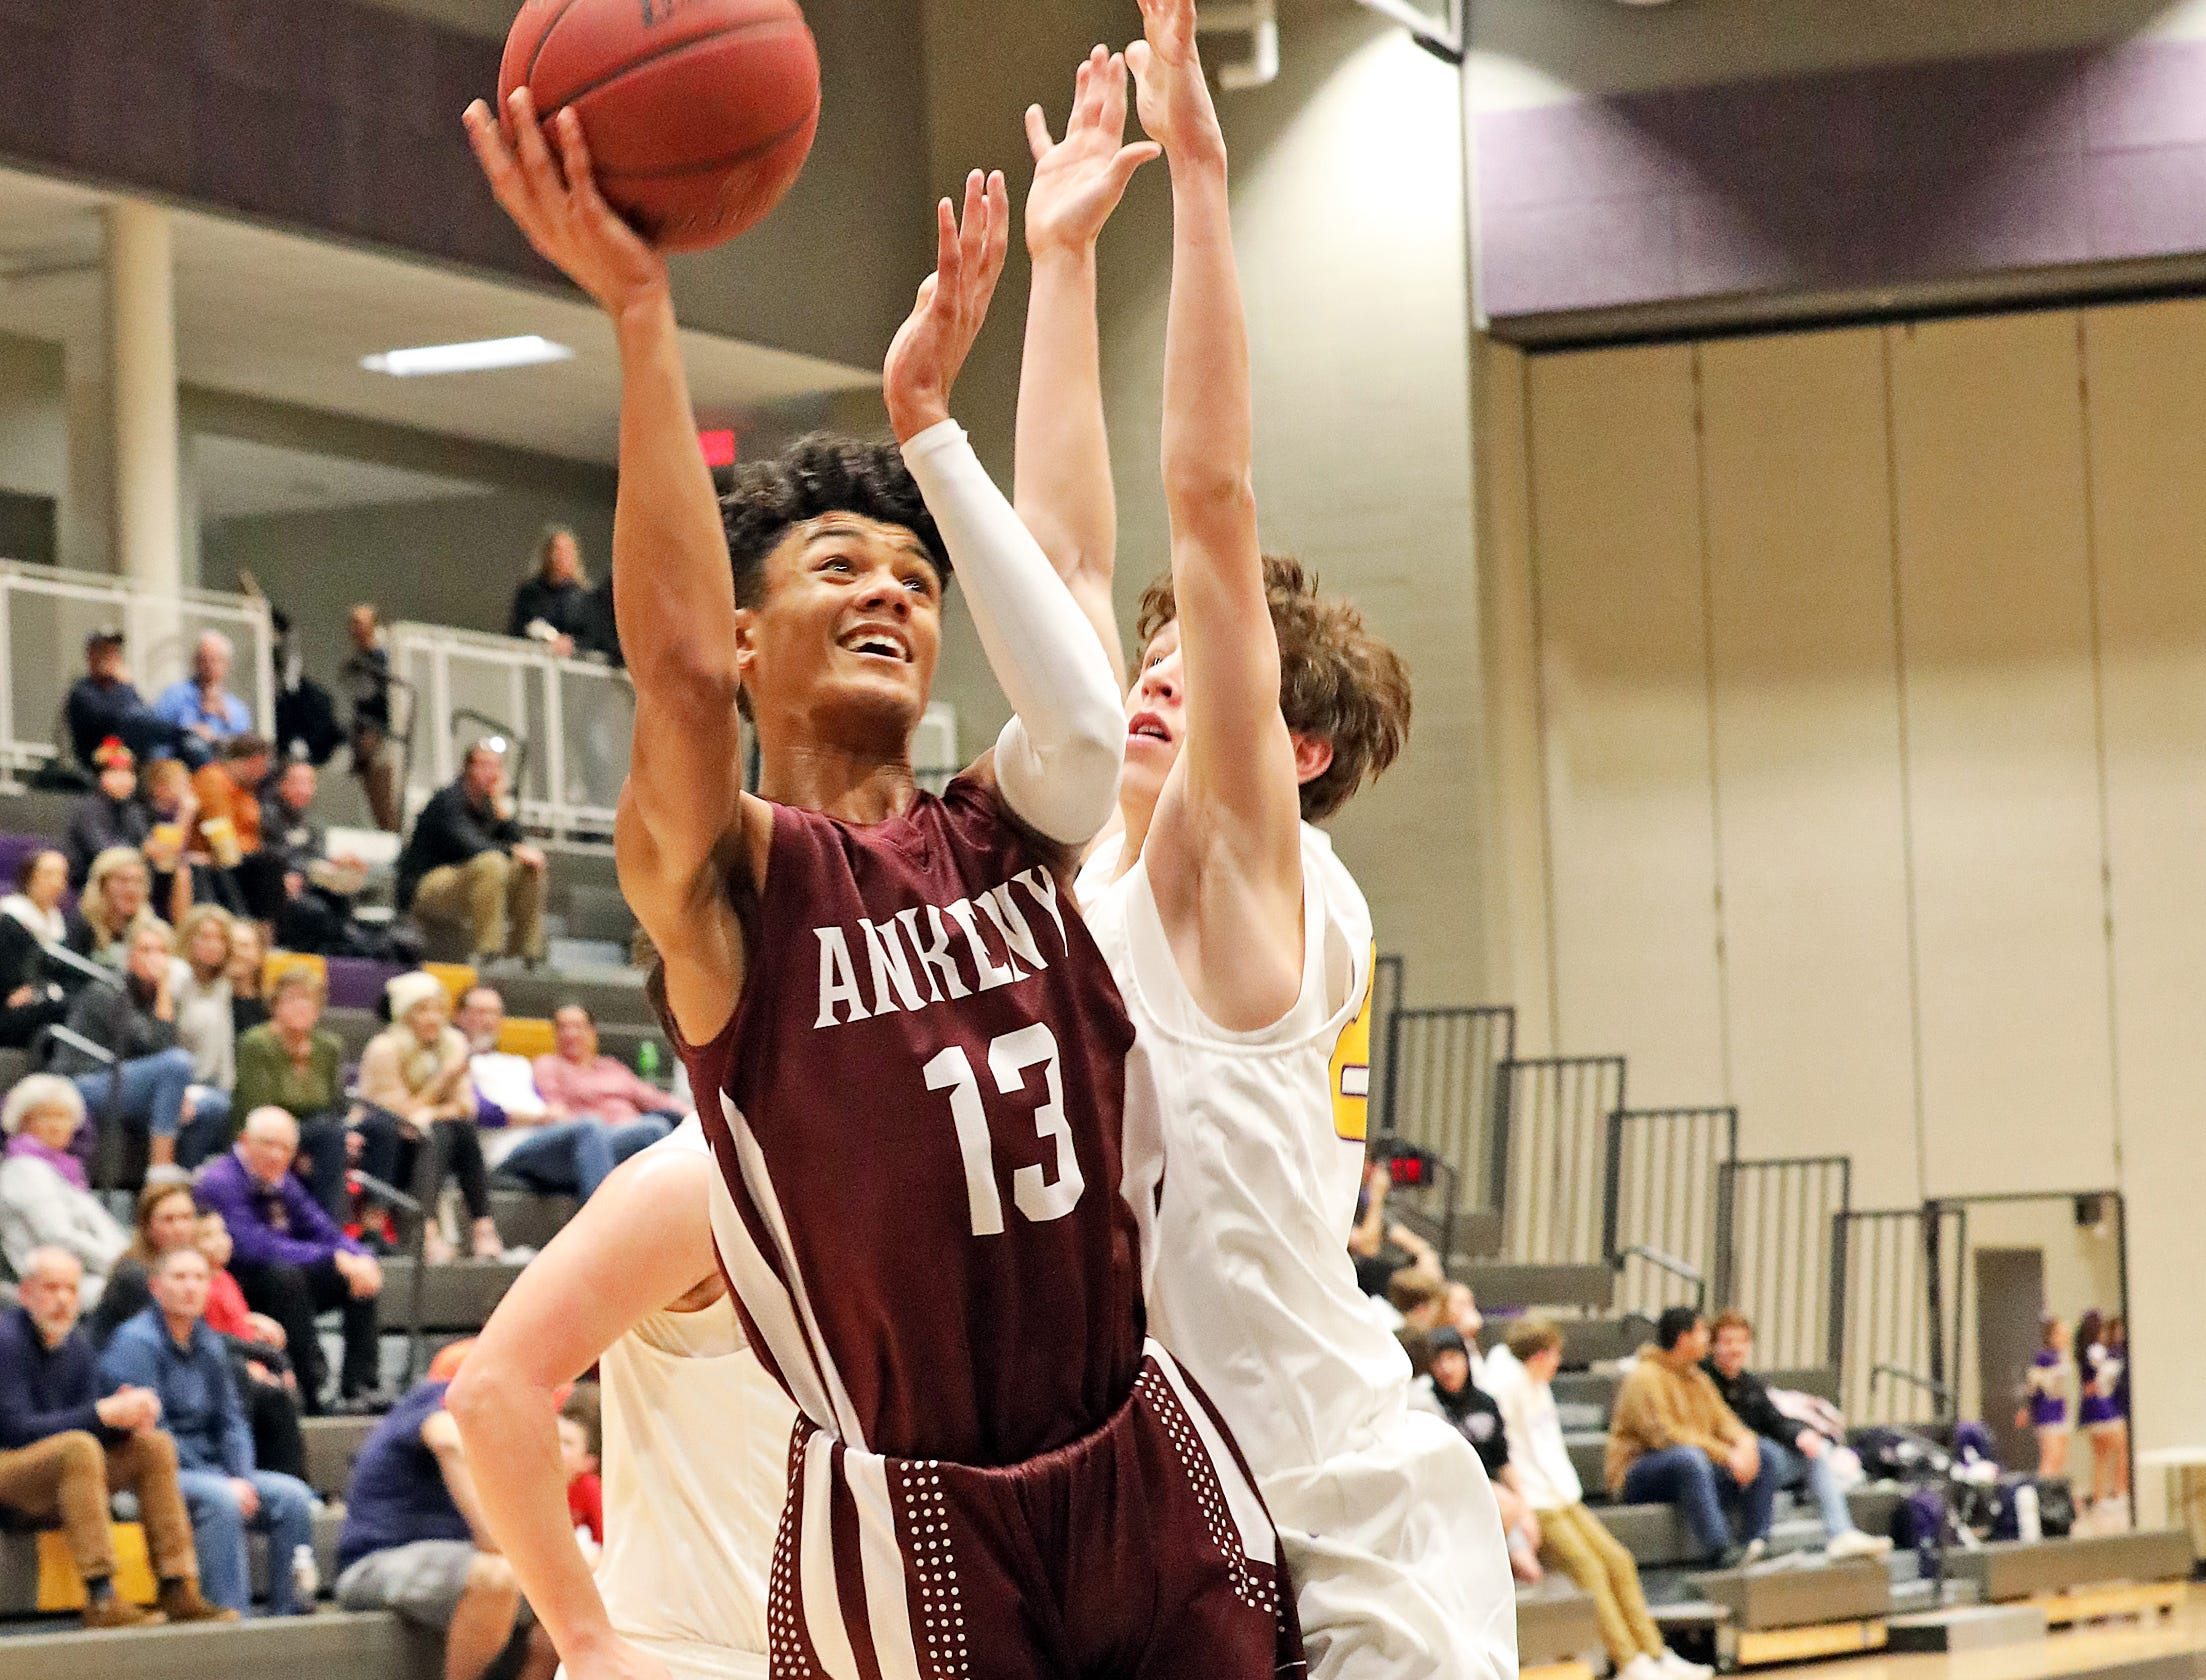 Ankeny junior Jaxon Smith shoots past the tough defense as the Ankeny Hawks compete against the Johnston Dragons in high school basketball on Friday, Dec. 21, 2018 at Johnston High School.